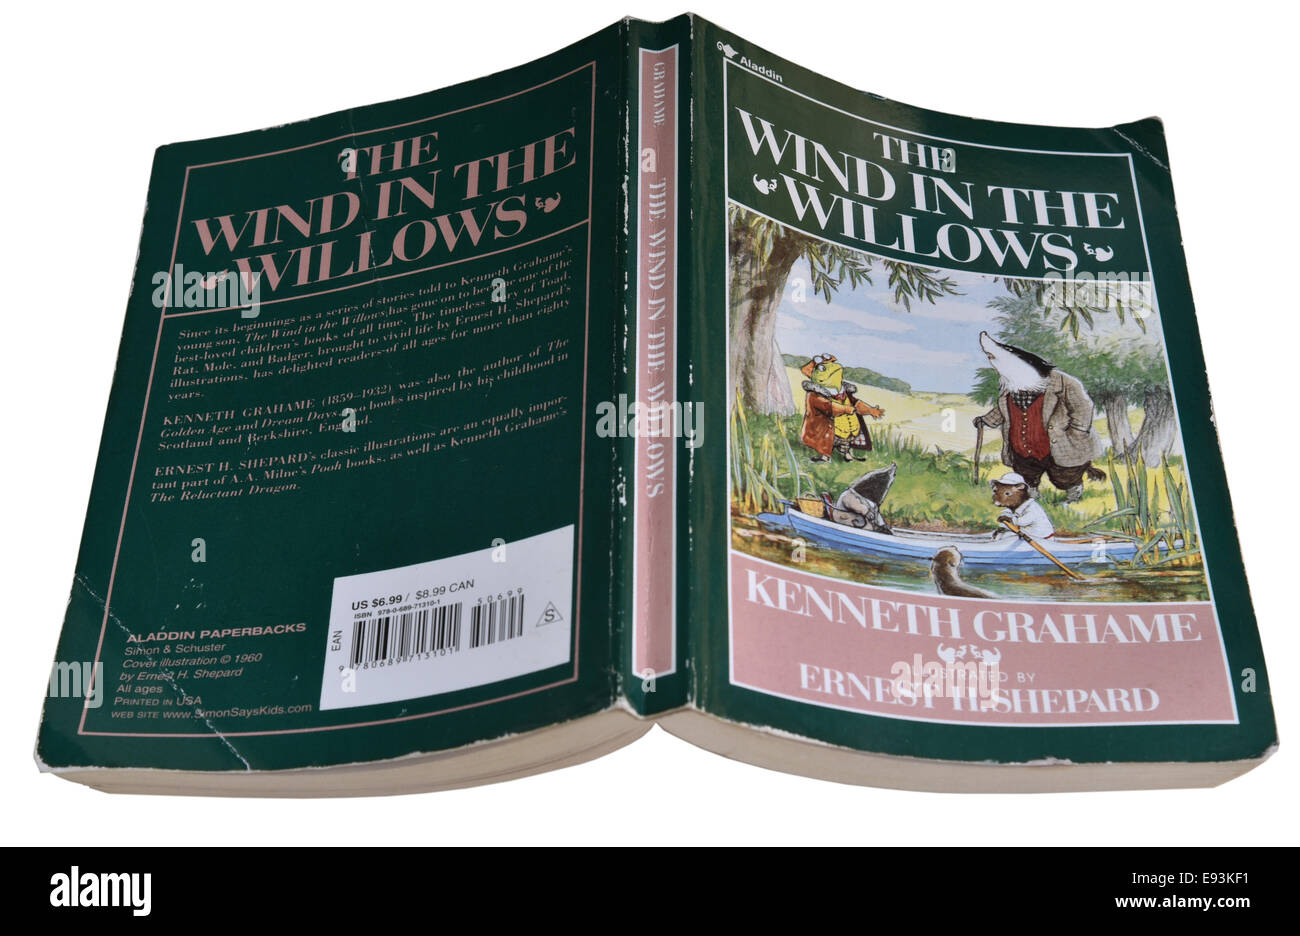 The Wind in the Willows by Kenneth Grahame - Stock Image